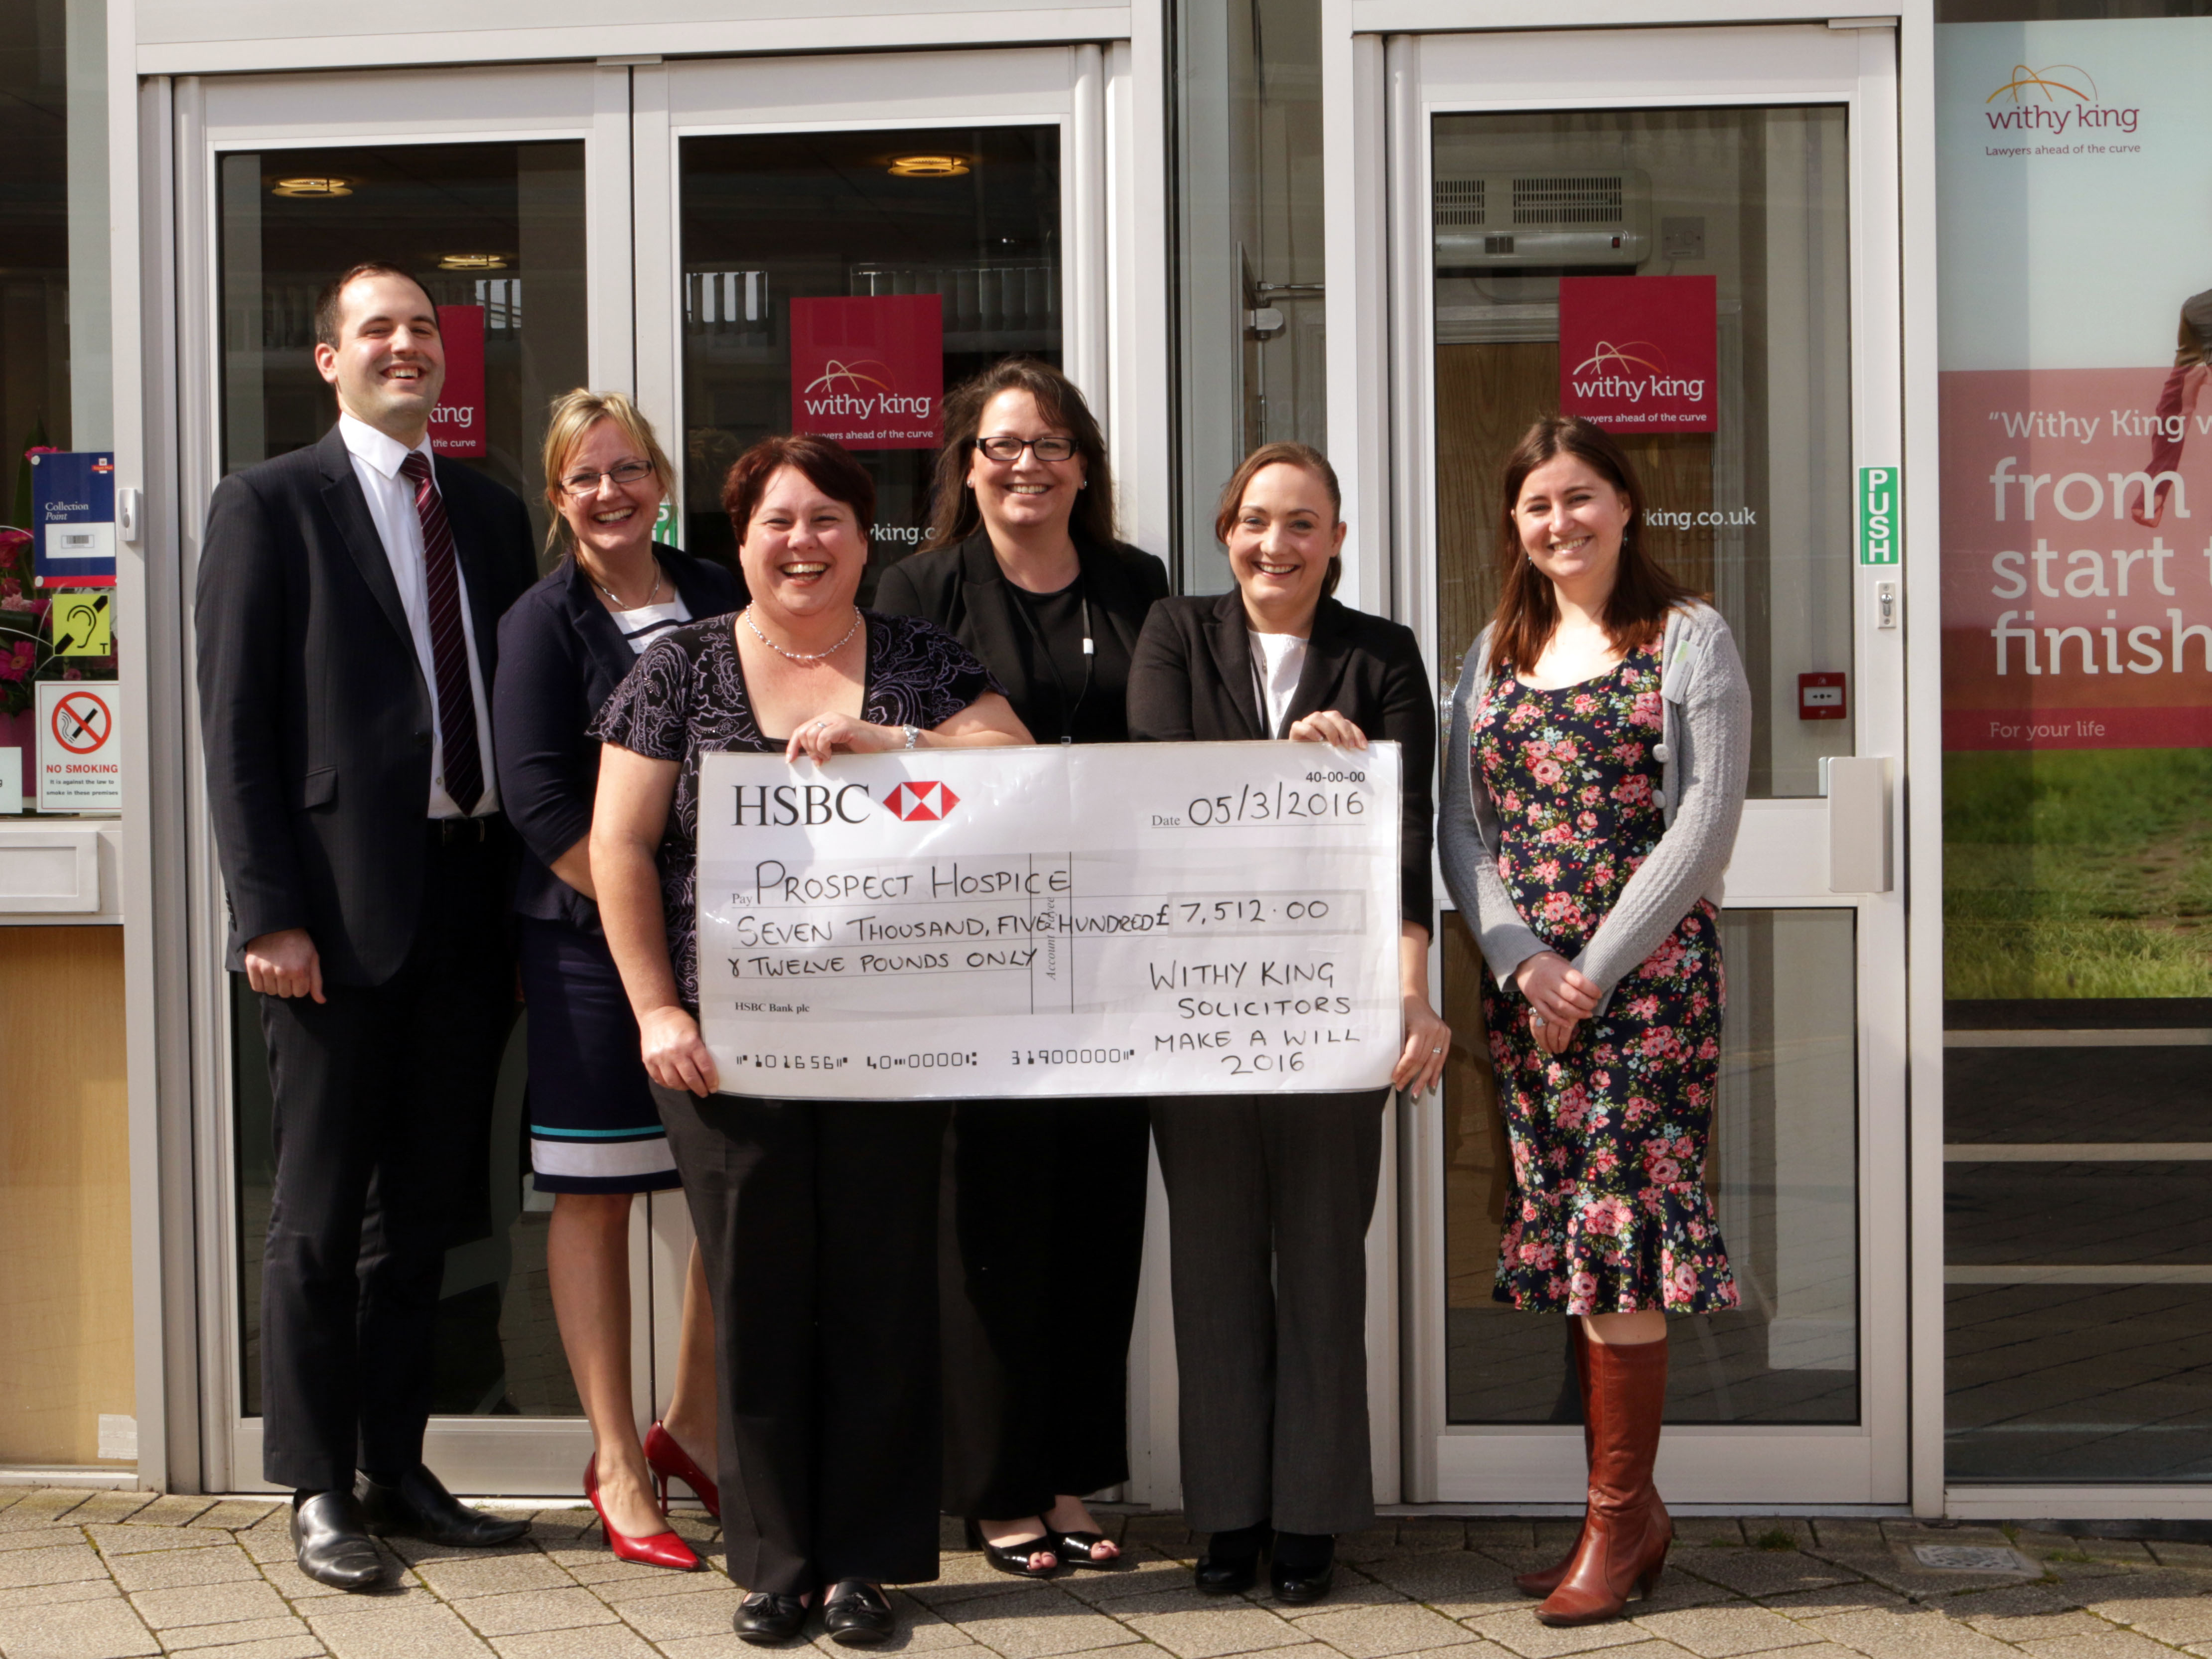 Prospect Hospice benefits to tune of £7,500 from Withy King's support for Make A Will Month